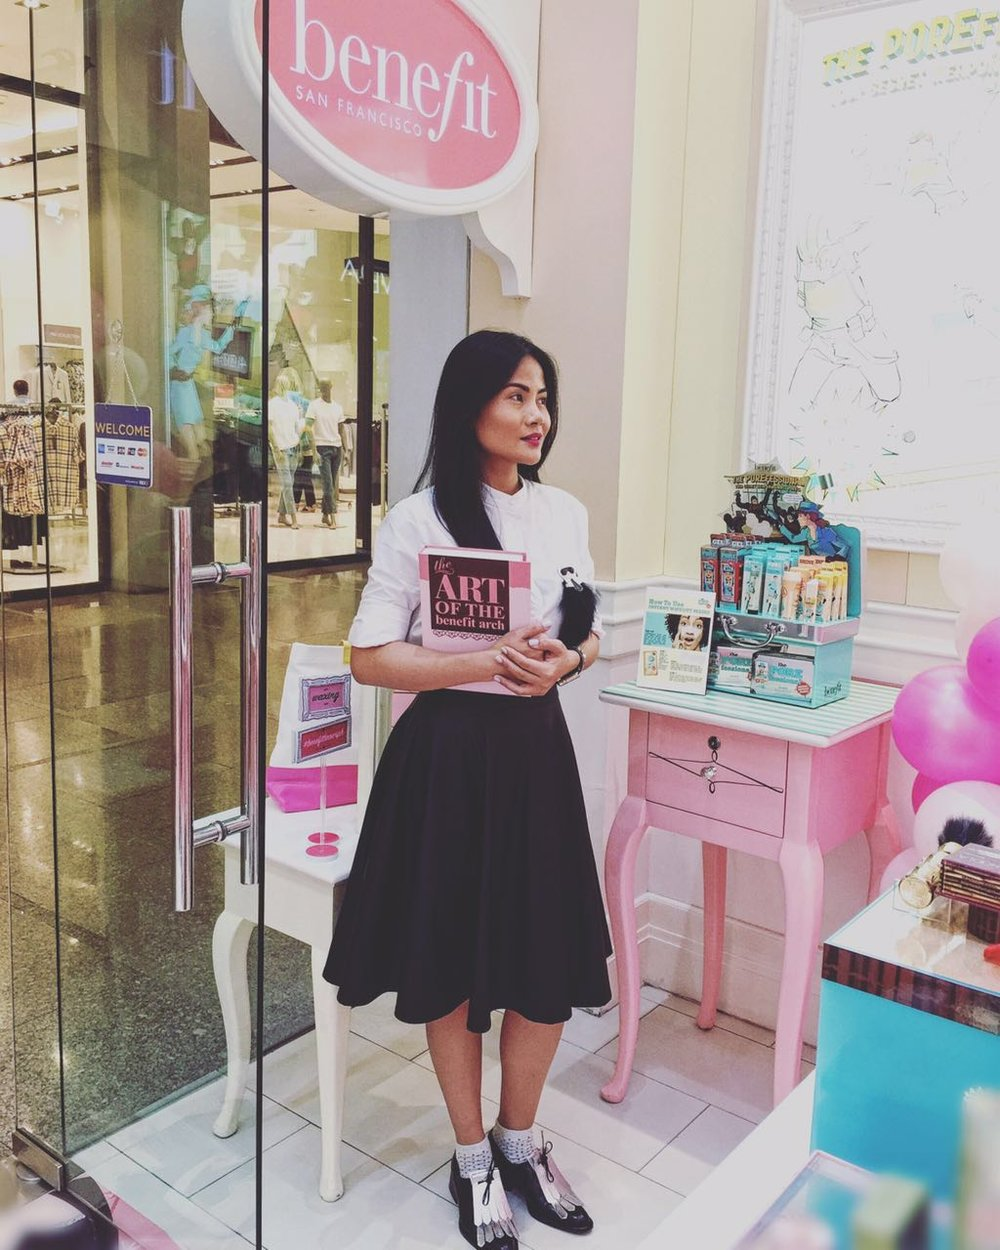 National Brow Artist, Benefit Cosmetics Philippines